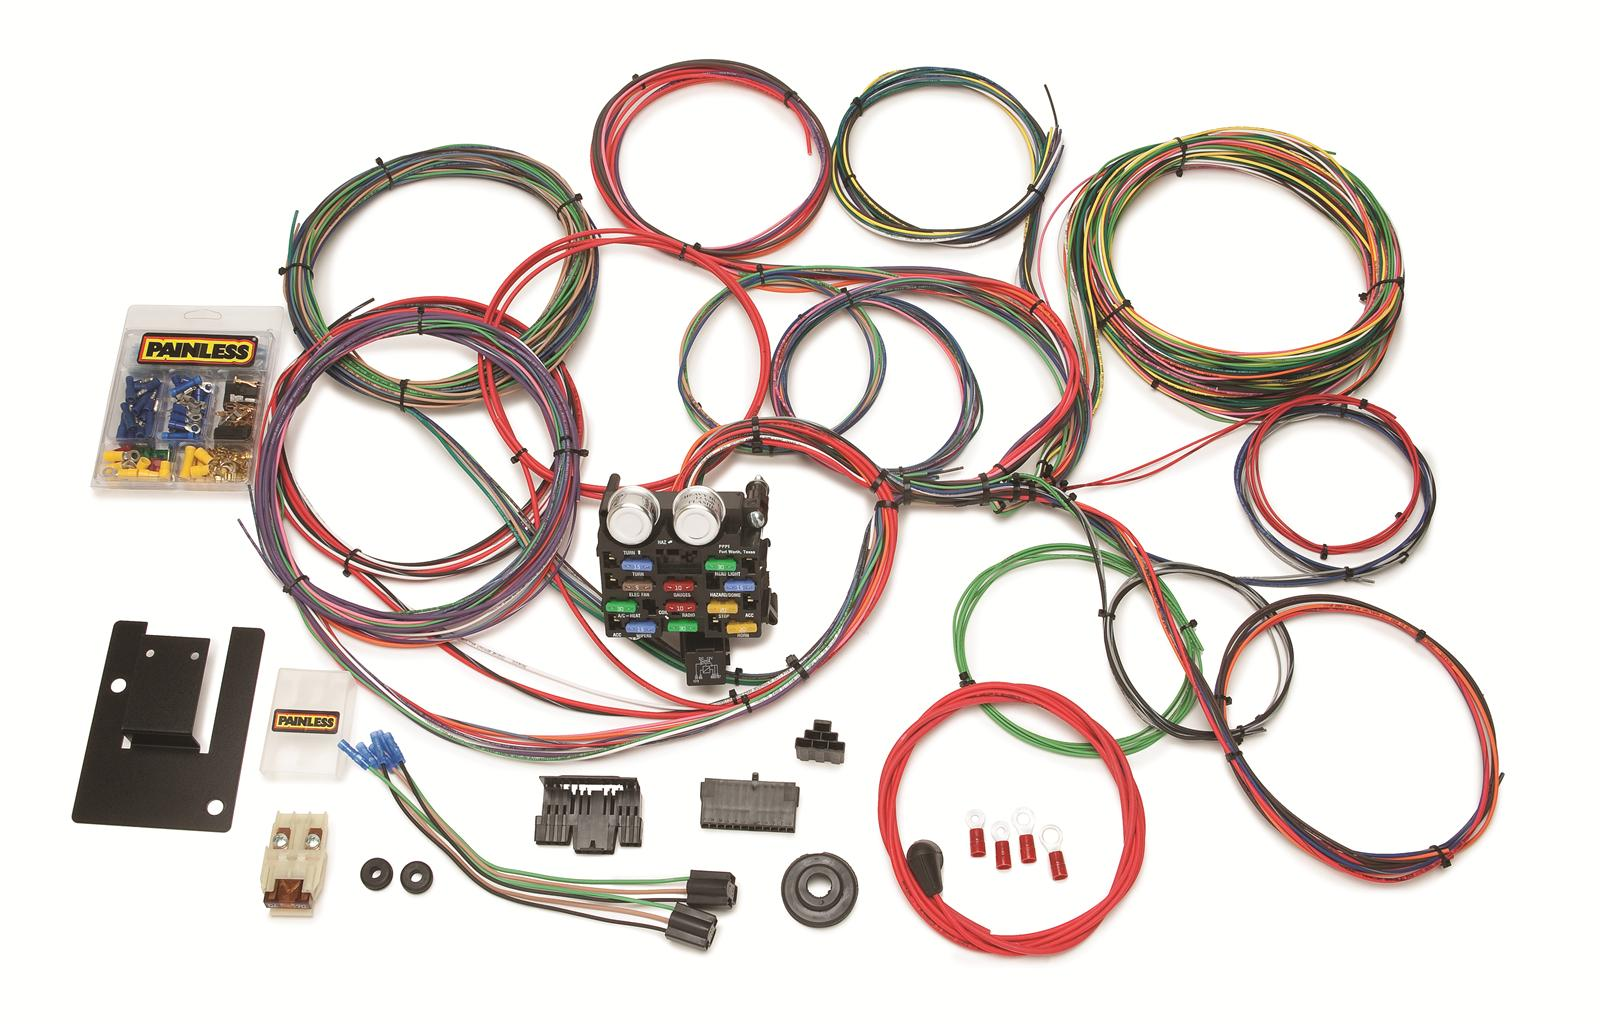 1955 Painless Wiring Harness 28 Diagram Images Chevy Bel Air Prf 20107 Xl Performance 21 Circuit 57 Tri Five